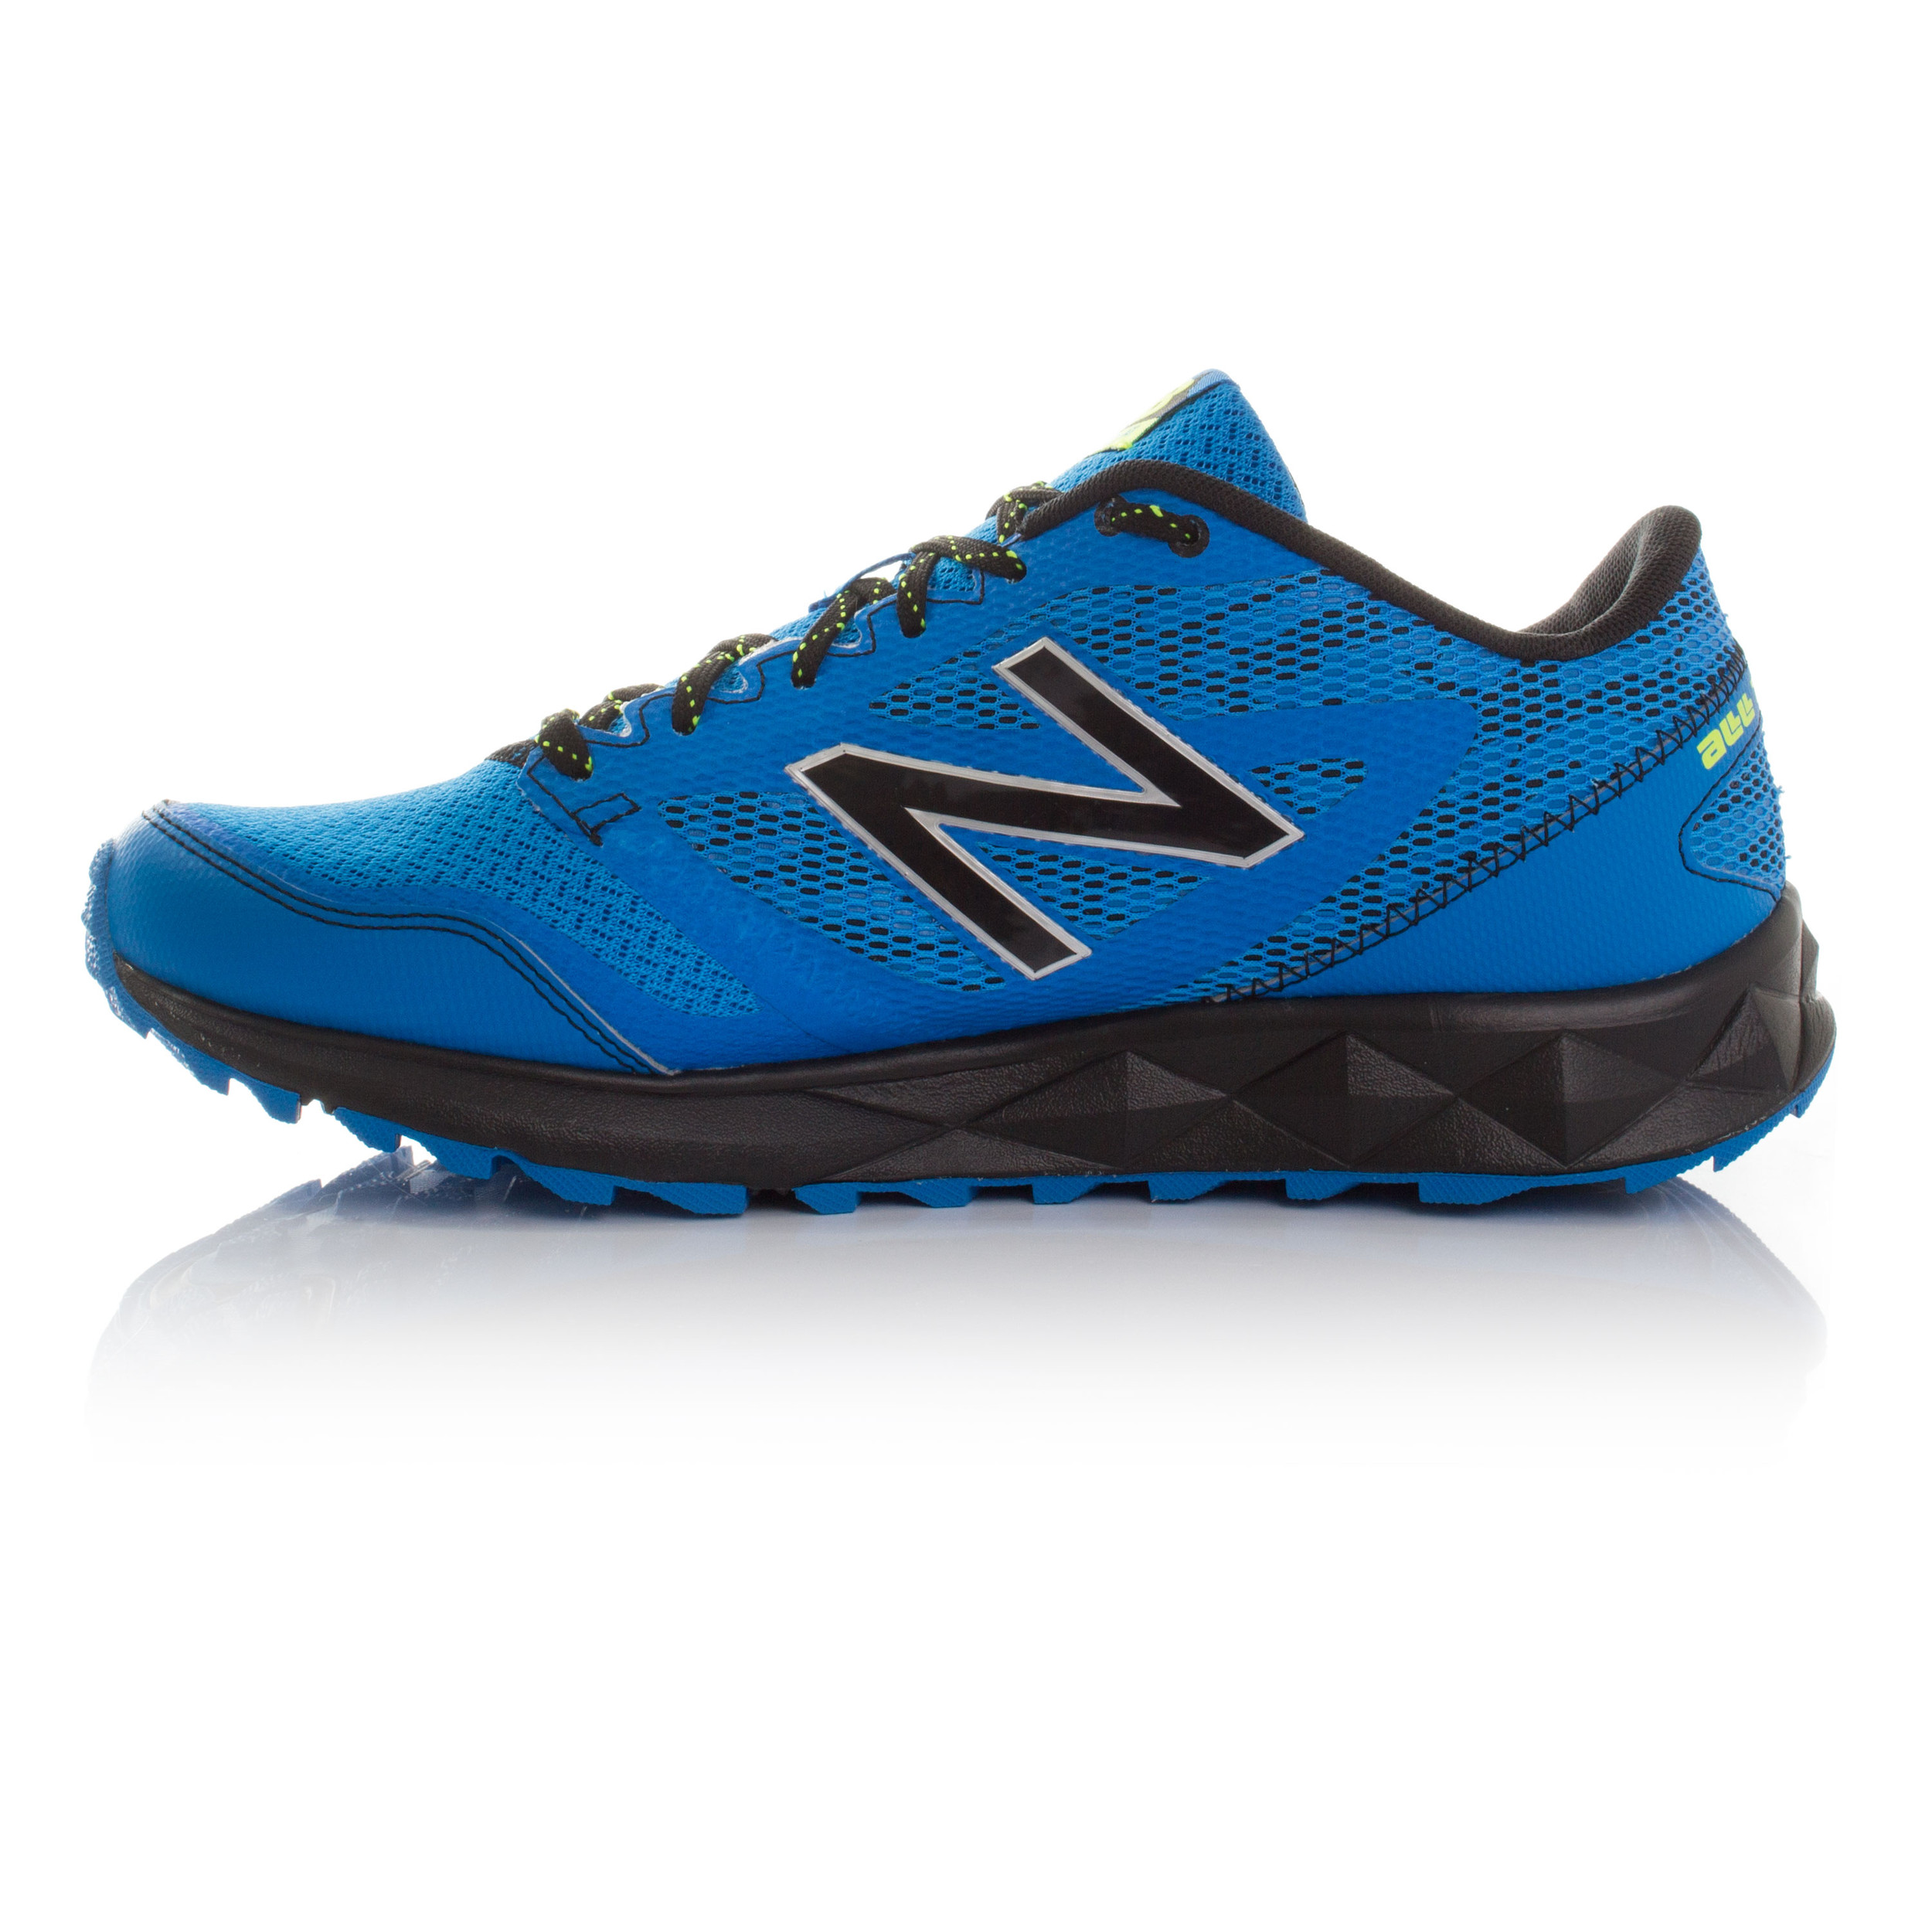 new balance mt590v2 mens blue trail running sports shoes trainers pumps ebay